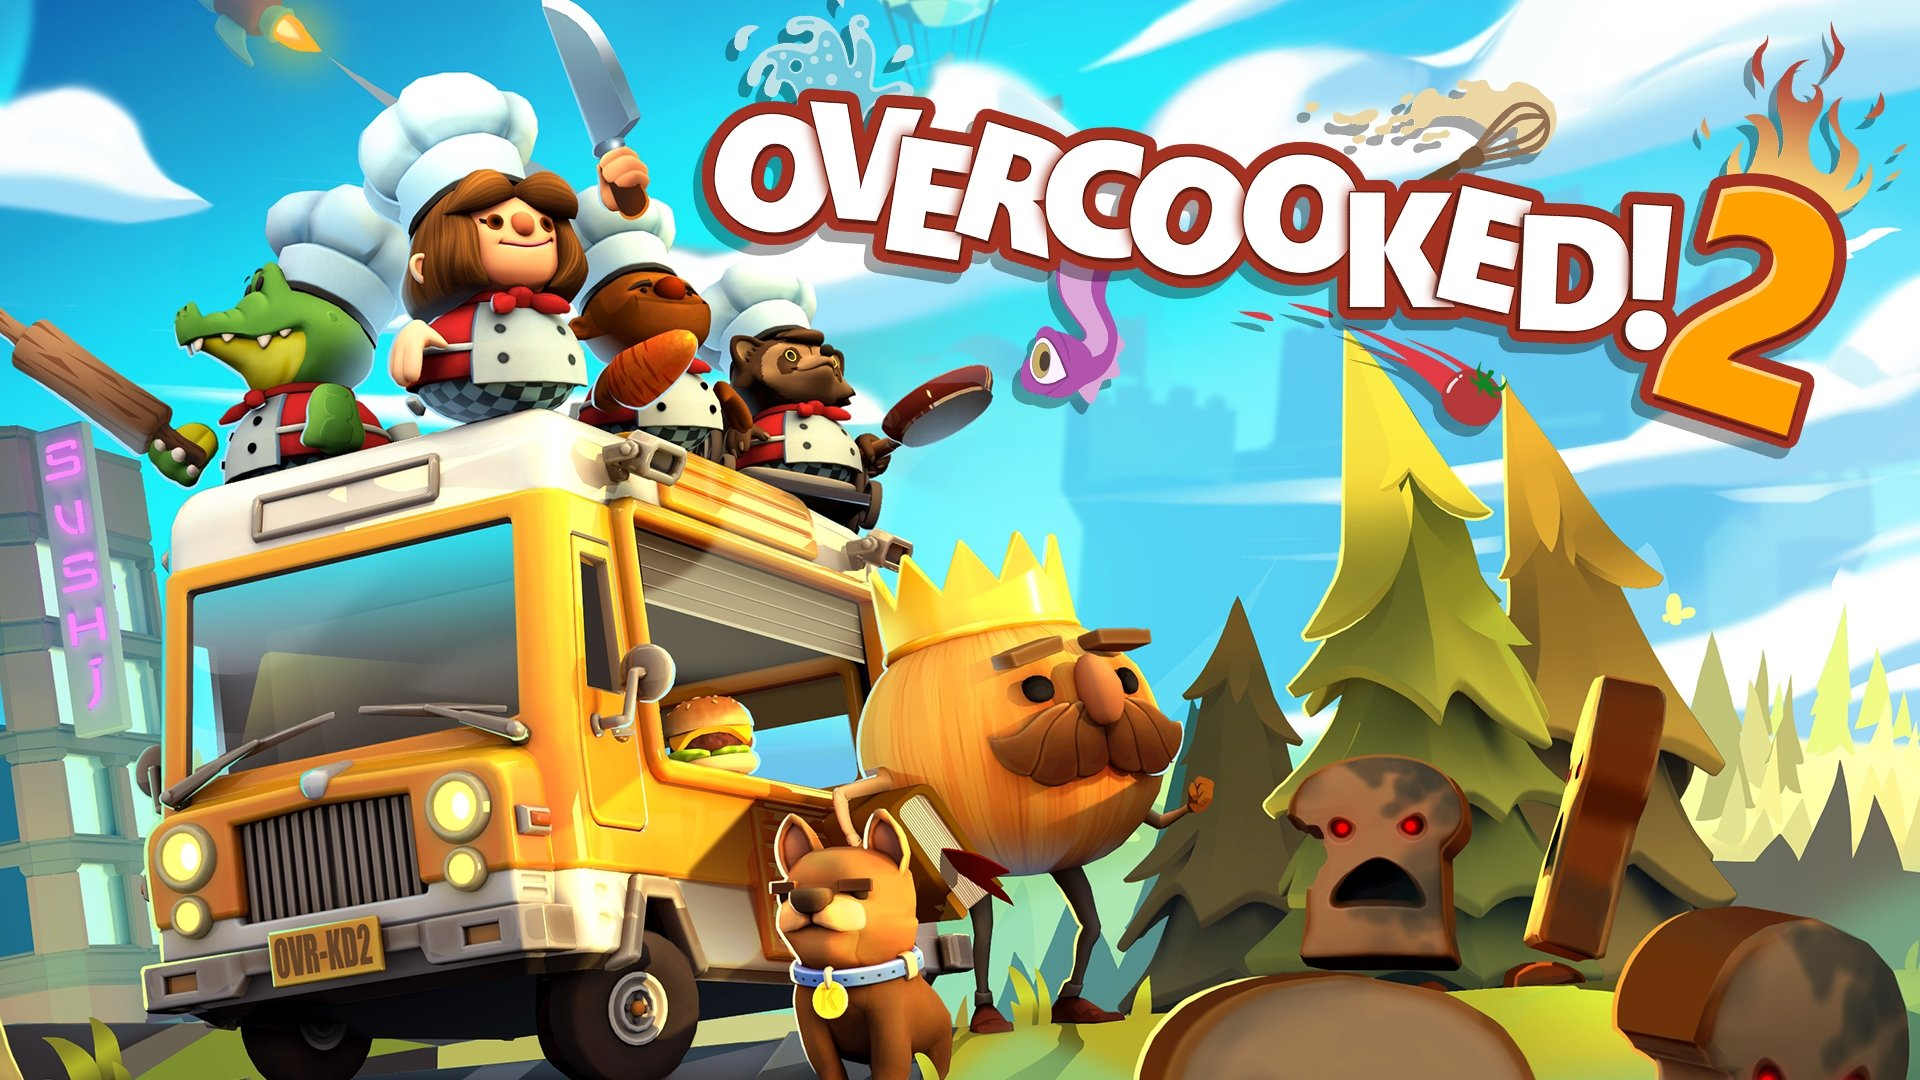 How to unlock all secret Kevin levels in Overcooked 2